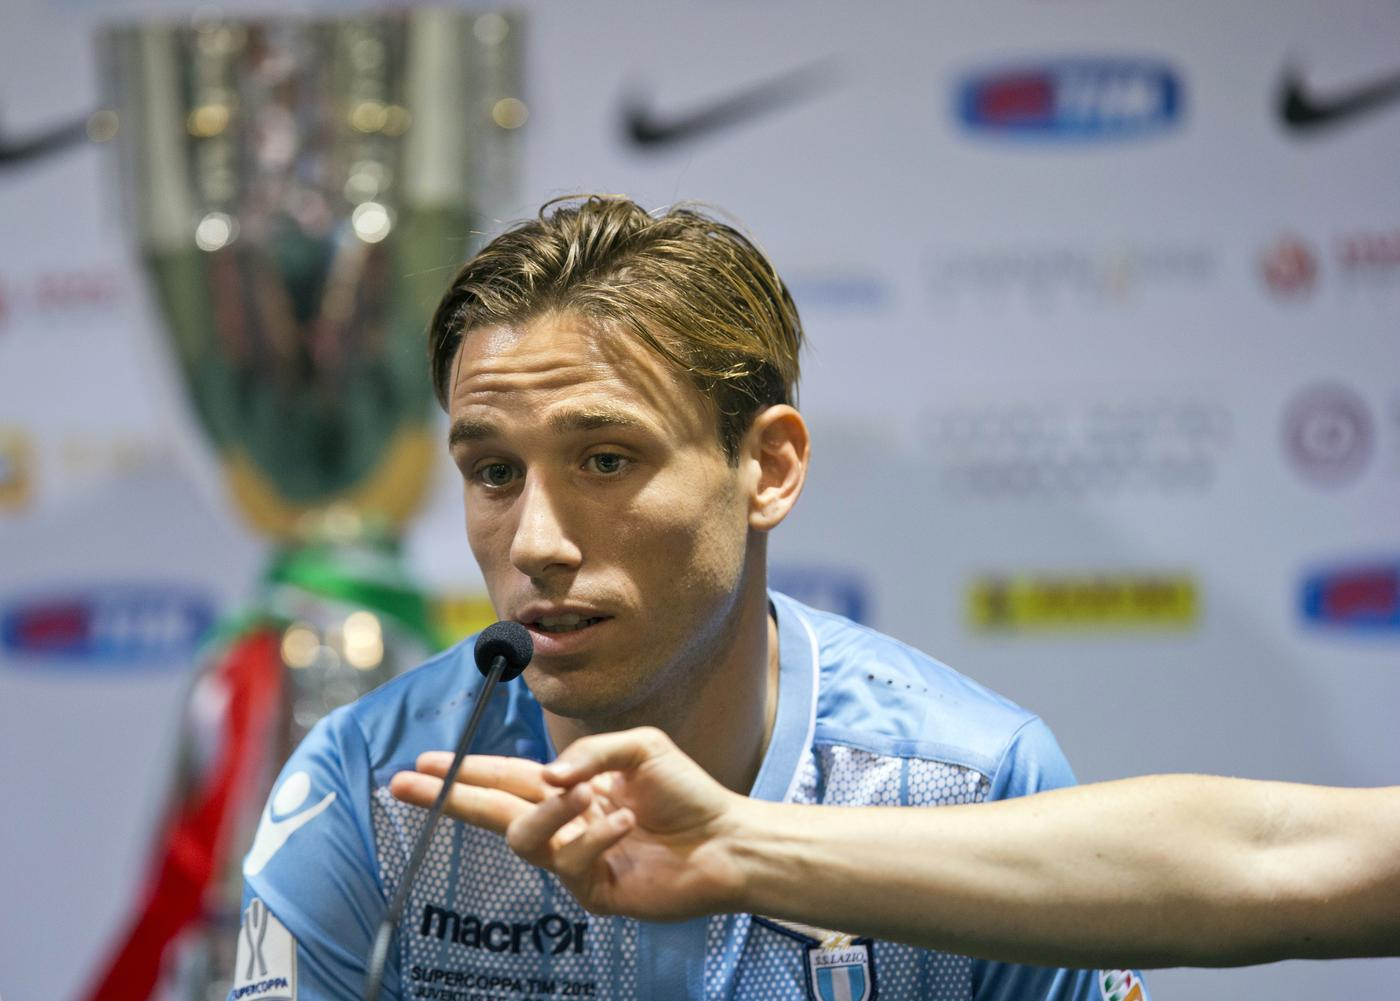 Lucas Biglia has probably missed the boat on £17.5million Manchester United transfer